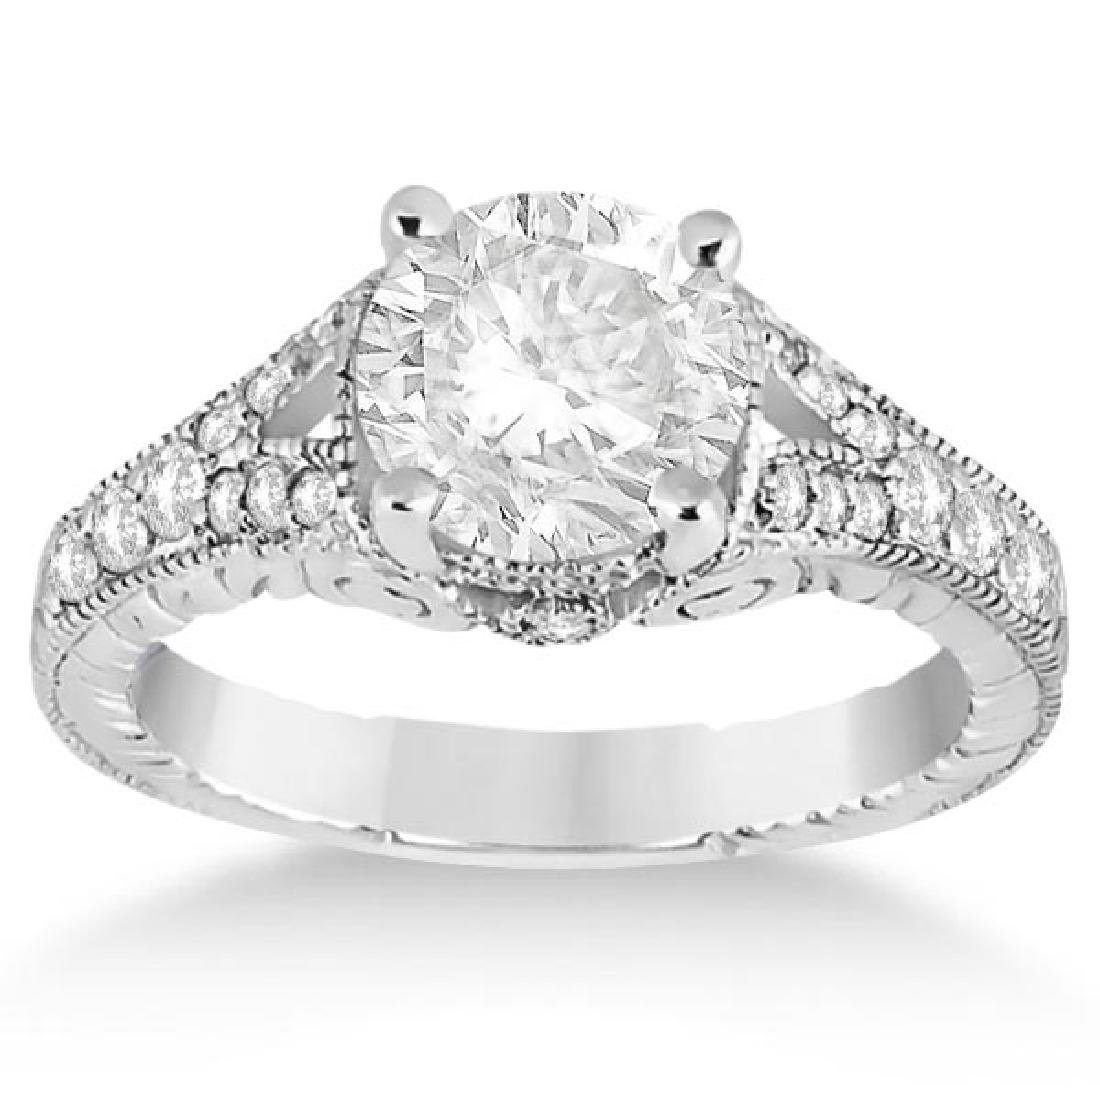 Antique Style Art Deco Diamond Engagement Ring Platinum